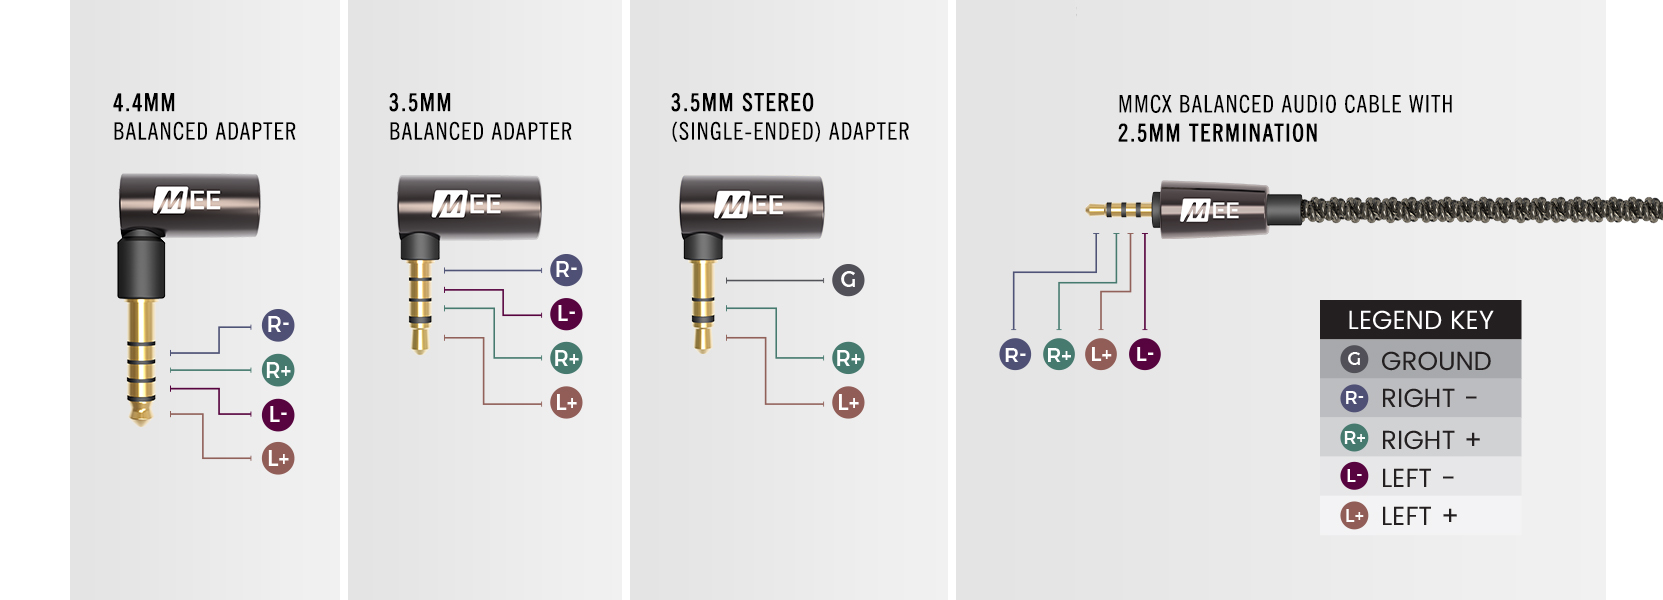 Mee Audio Universal Mmcx Cable Adapter Set For Headphones In 3 5mm Wiring Diagram Included Ensures Compatibility With The Widest Range Of Portable Amps Dacs And High End Players